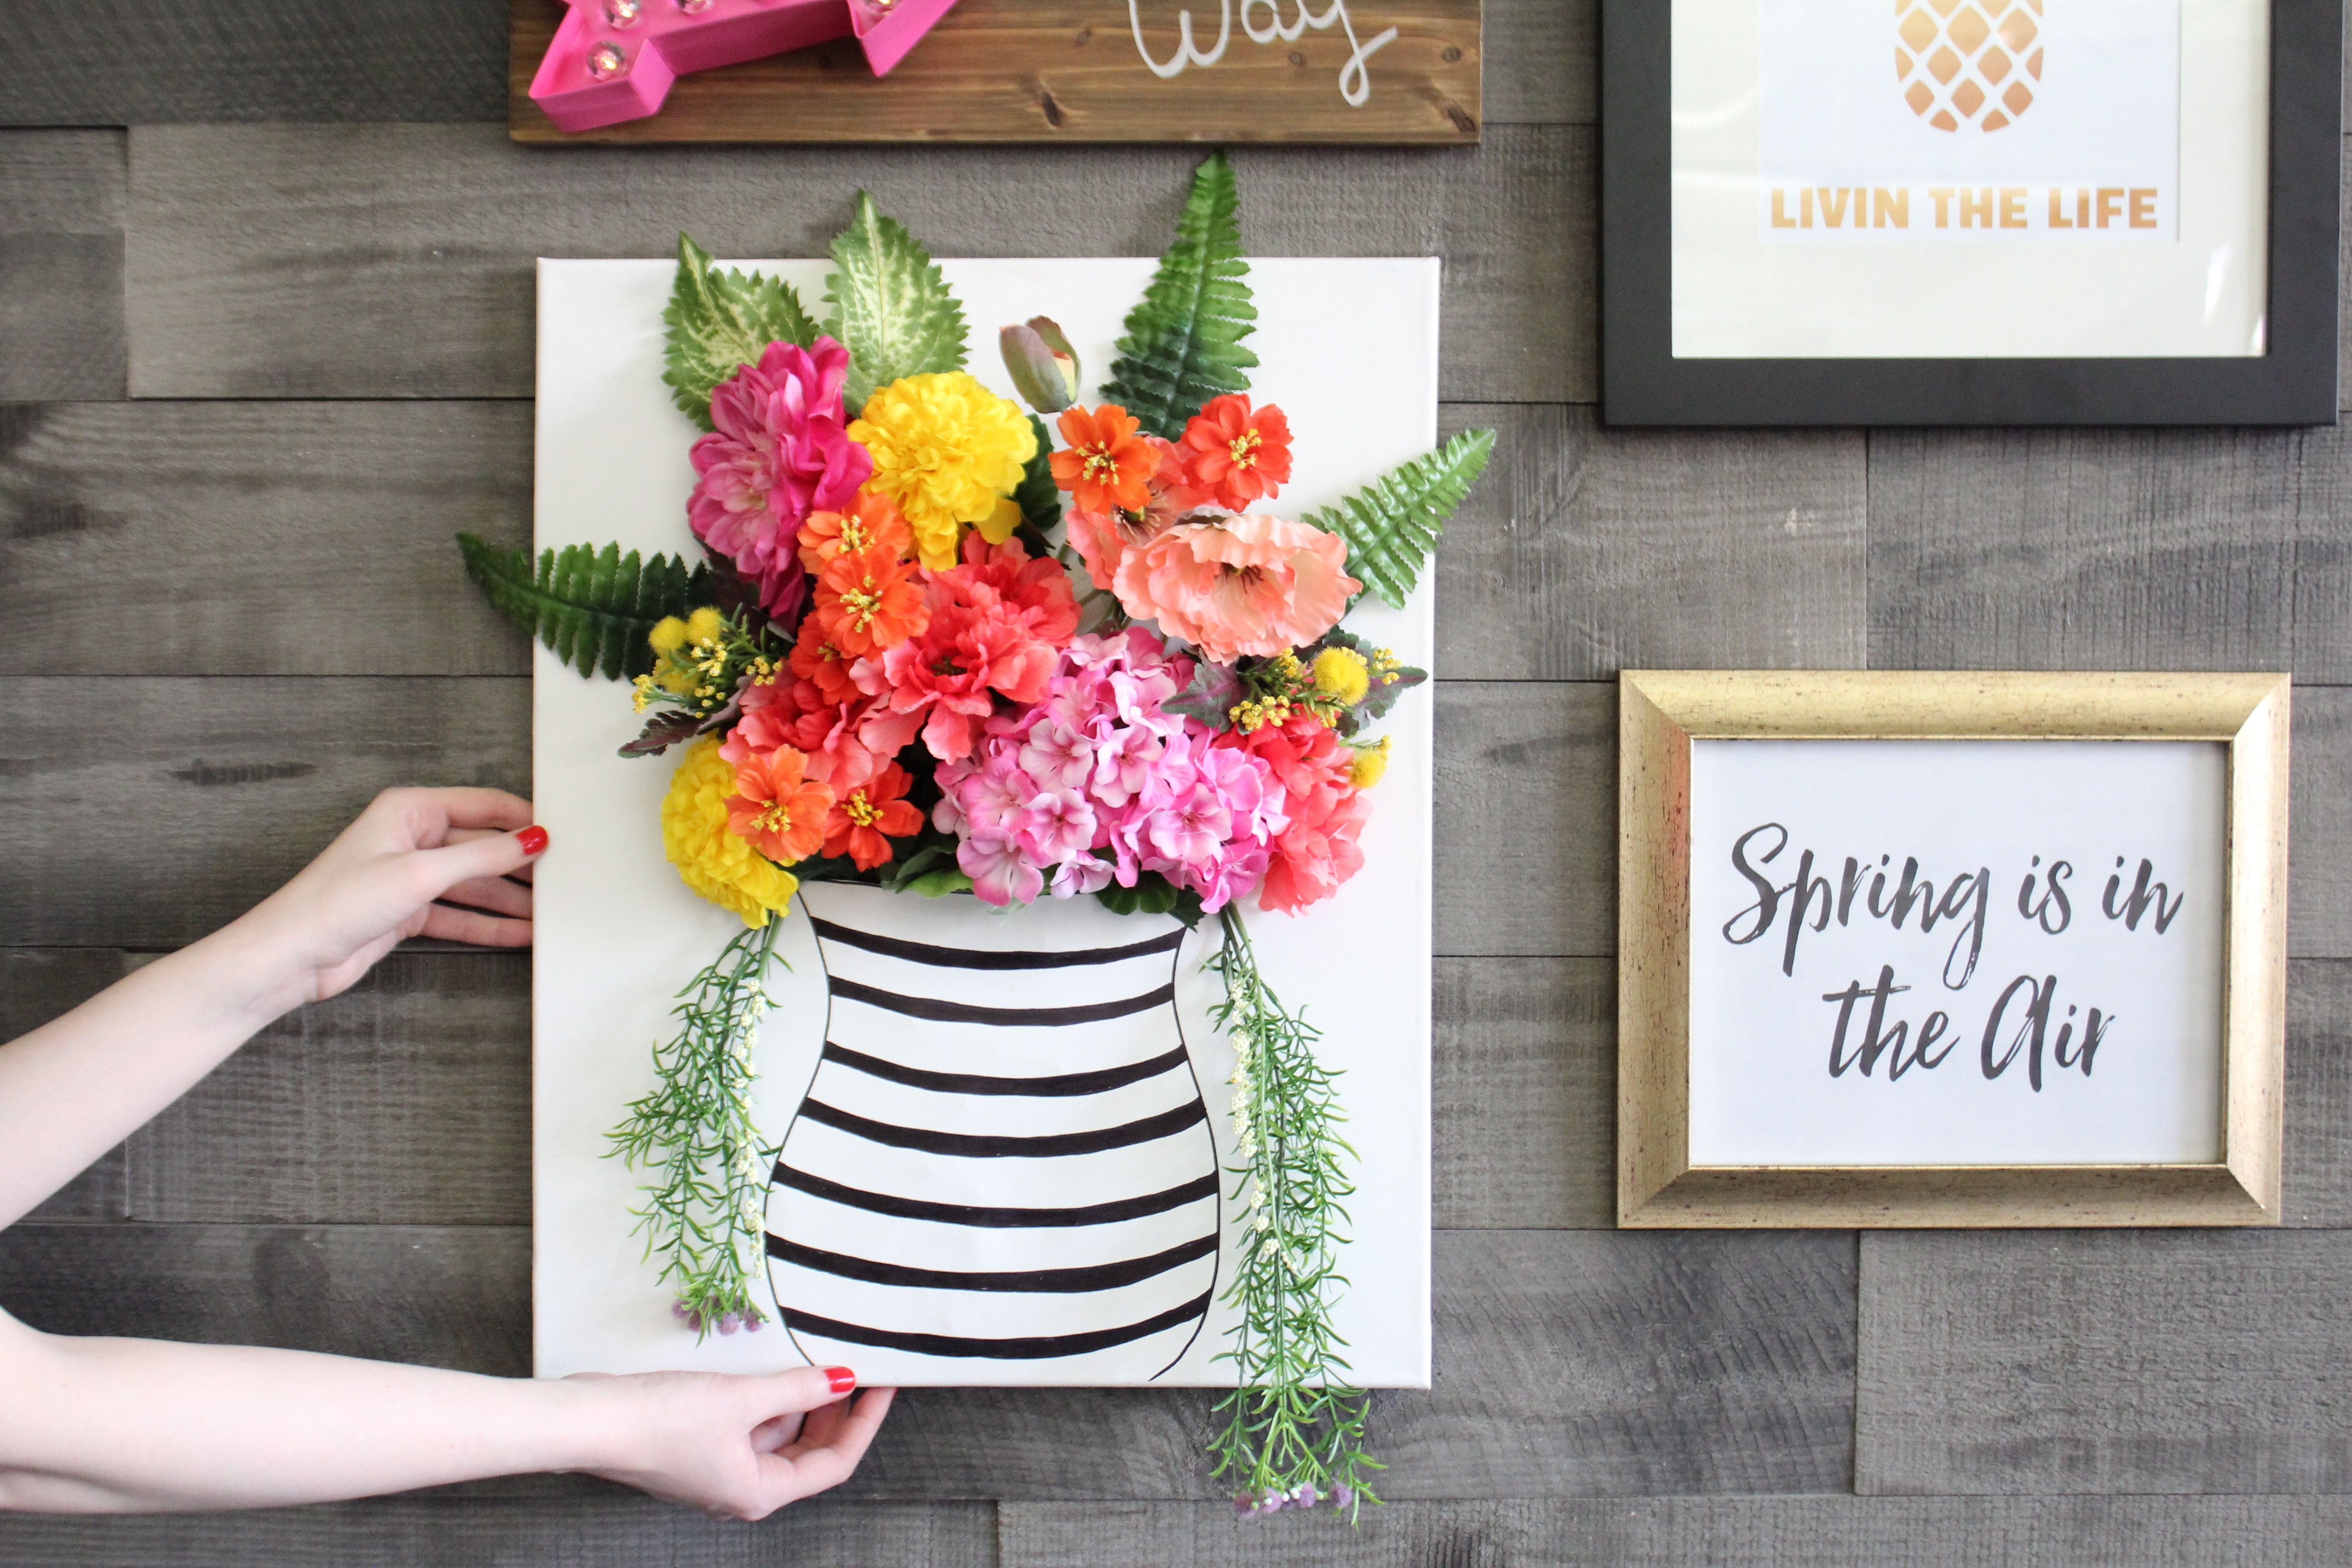 Watch How To Make Your Own 3d Floral Wall Art With This Easy Diy